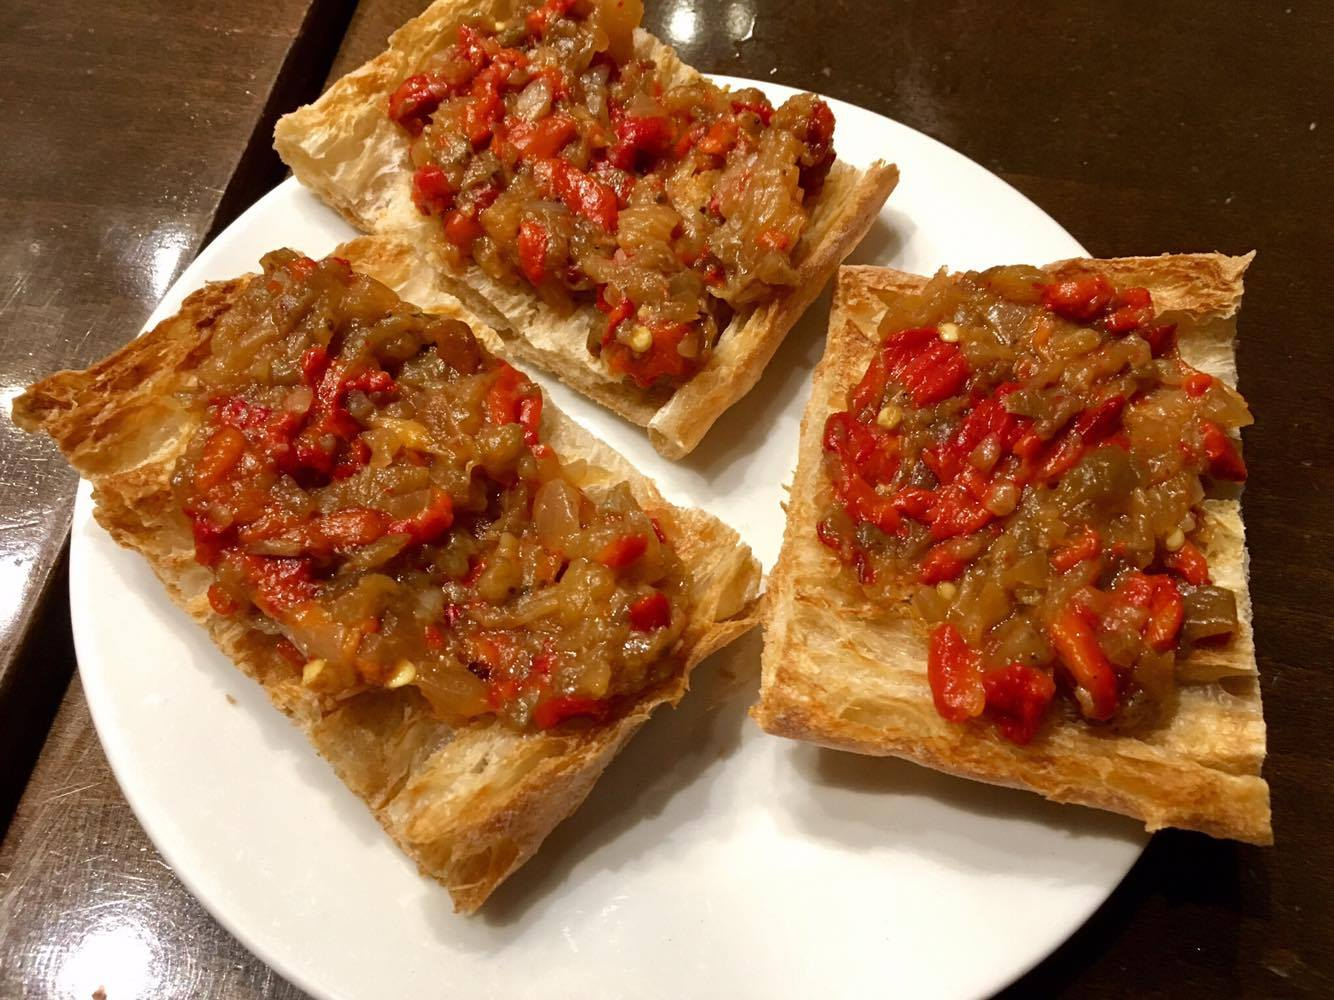 Bread topped with sun-dried tomatoes,sautéed green peppers, and simmered onions